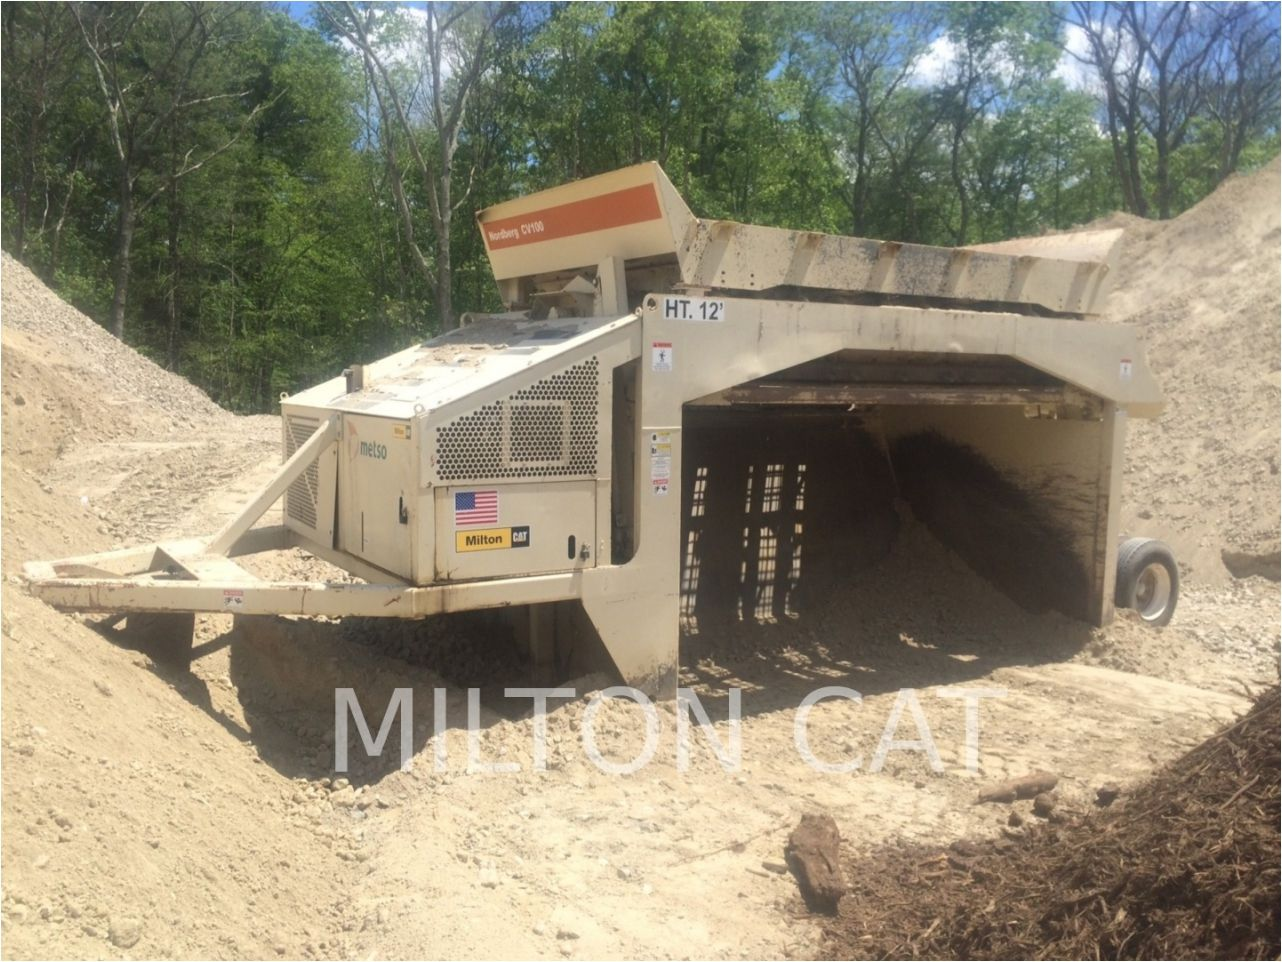 2014 METSO CV100 Screen for sale Milton CAT Milford, MA